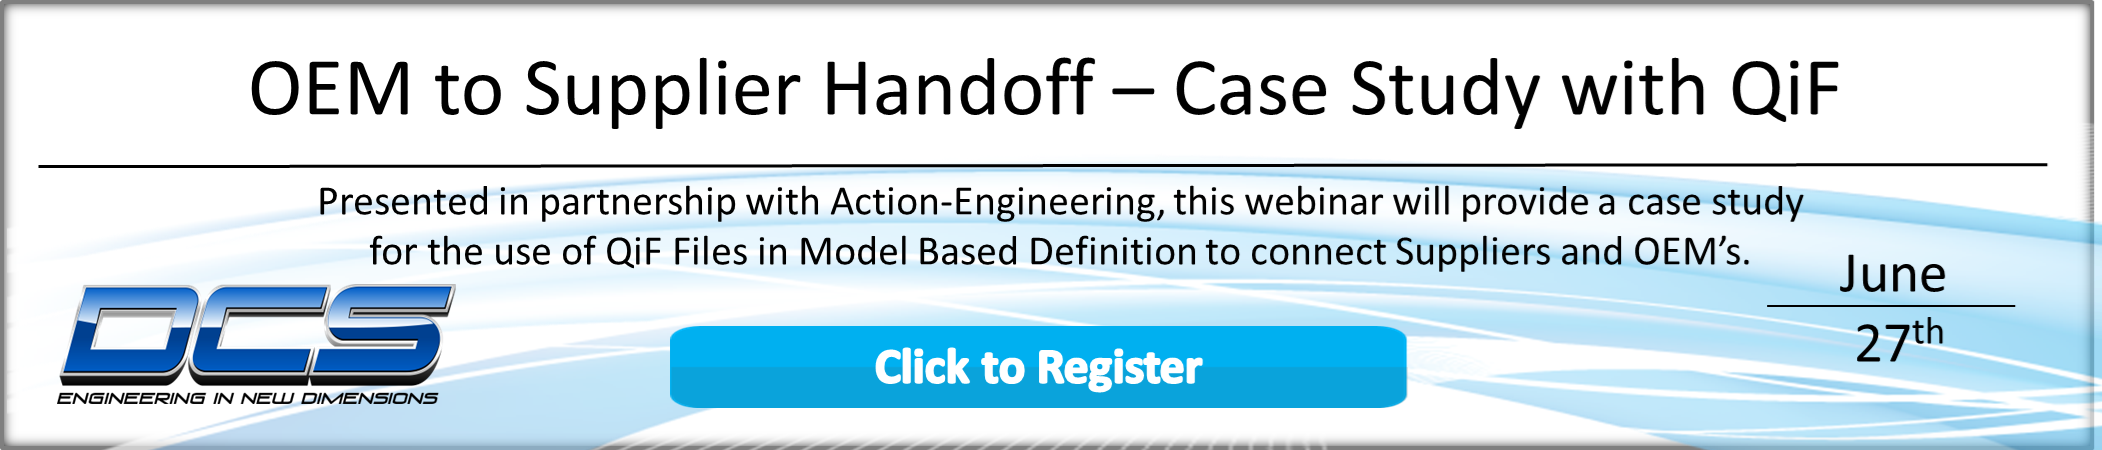 Webinar - Action Engineering and QiF